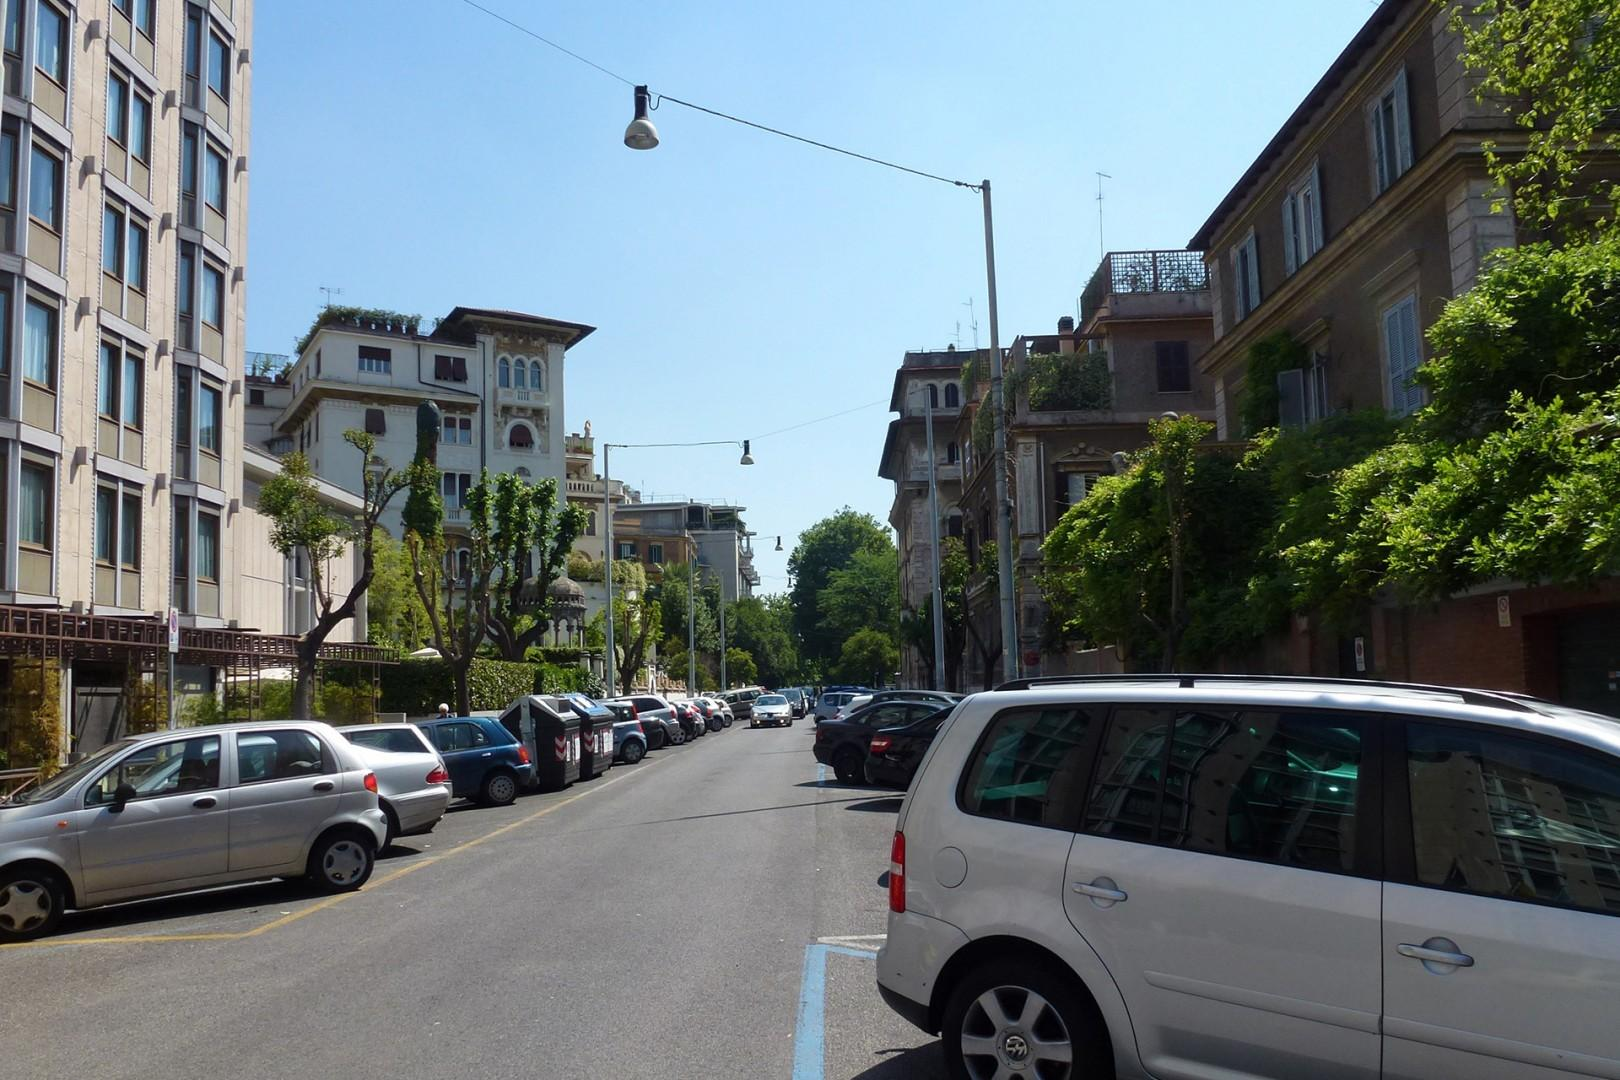 Tree lined street on which the apartment is located is characteristic of the Prati area of Rome.